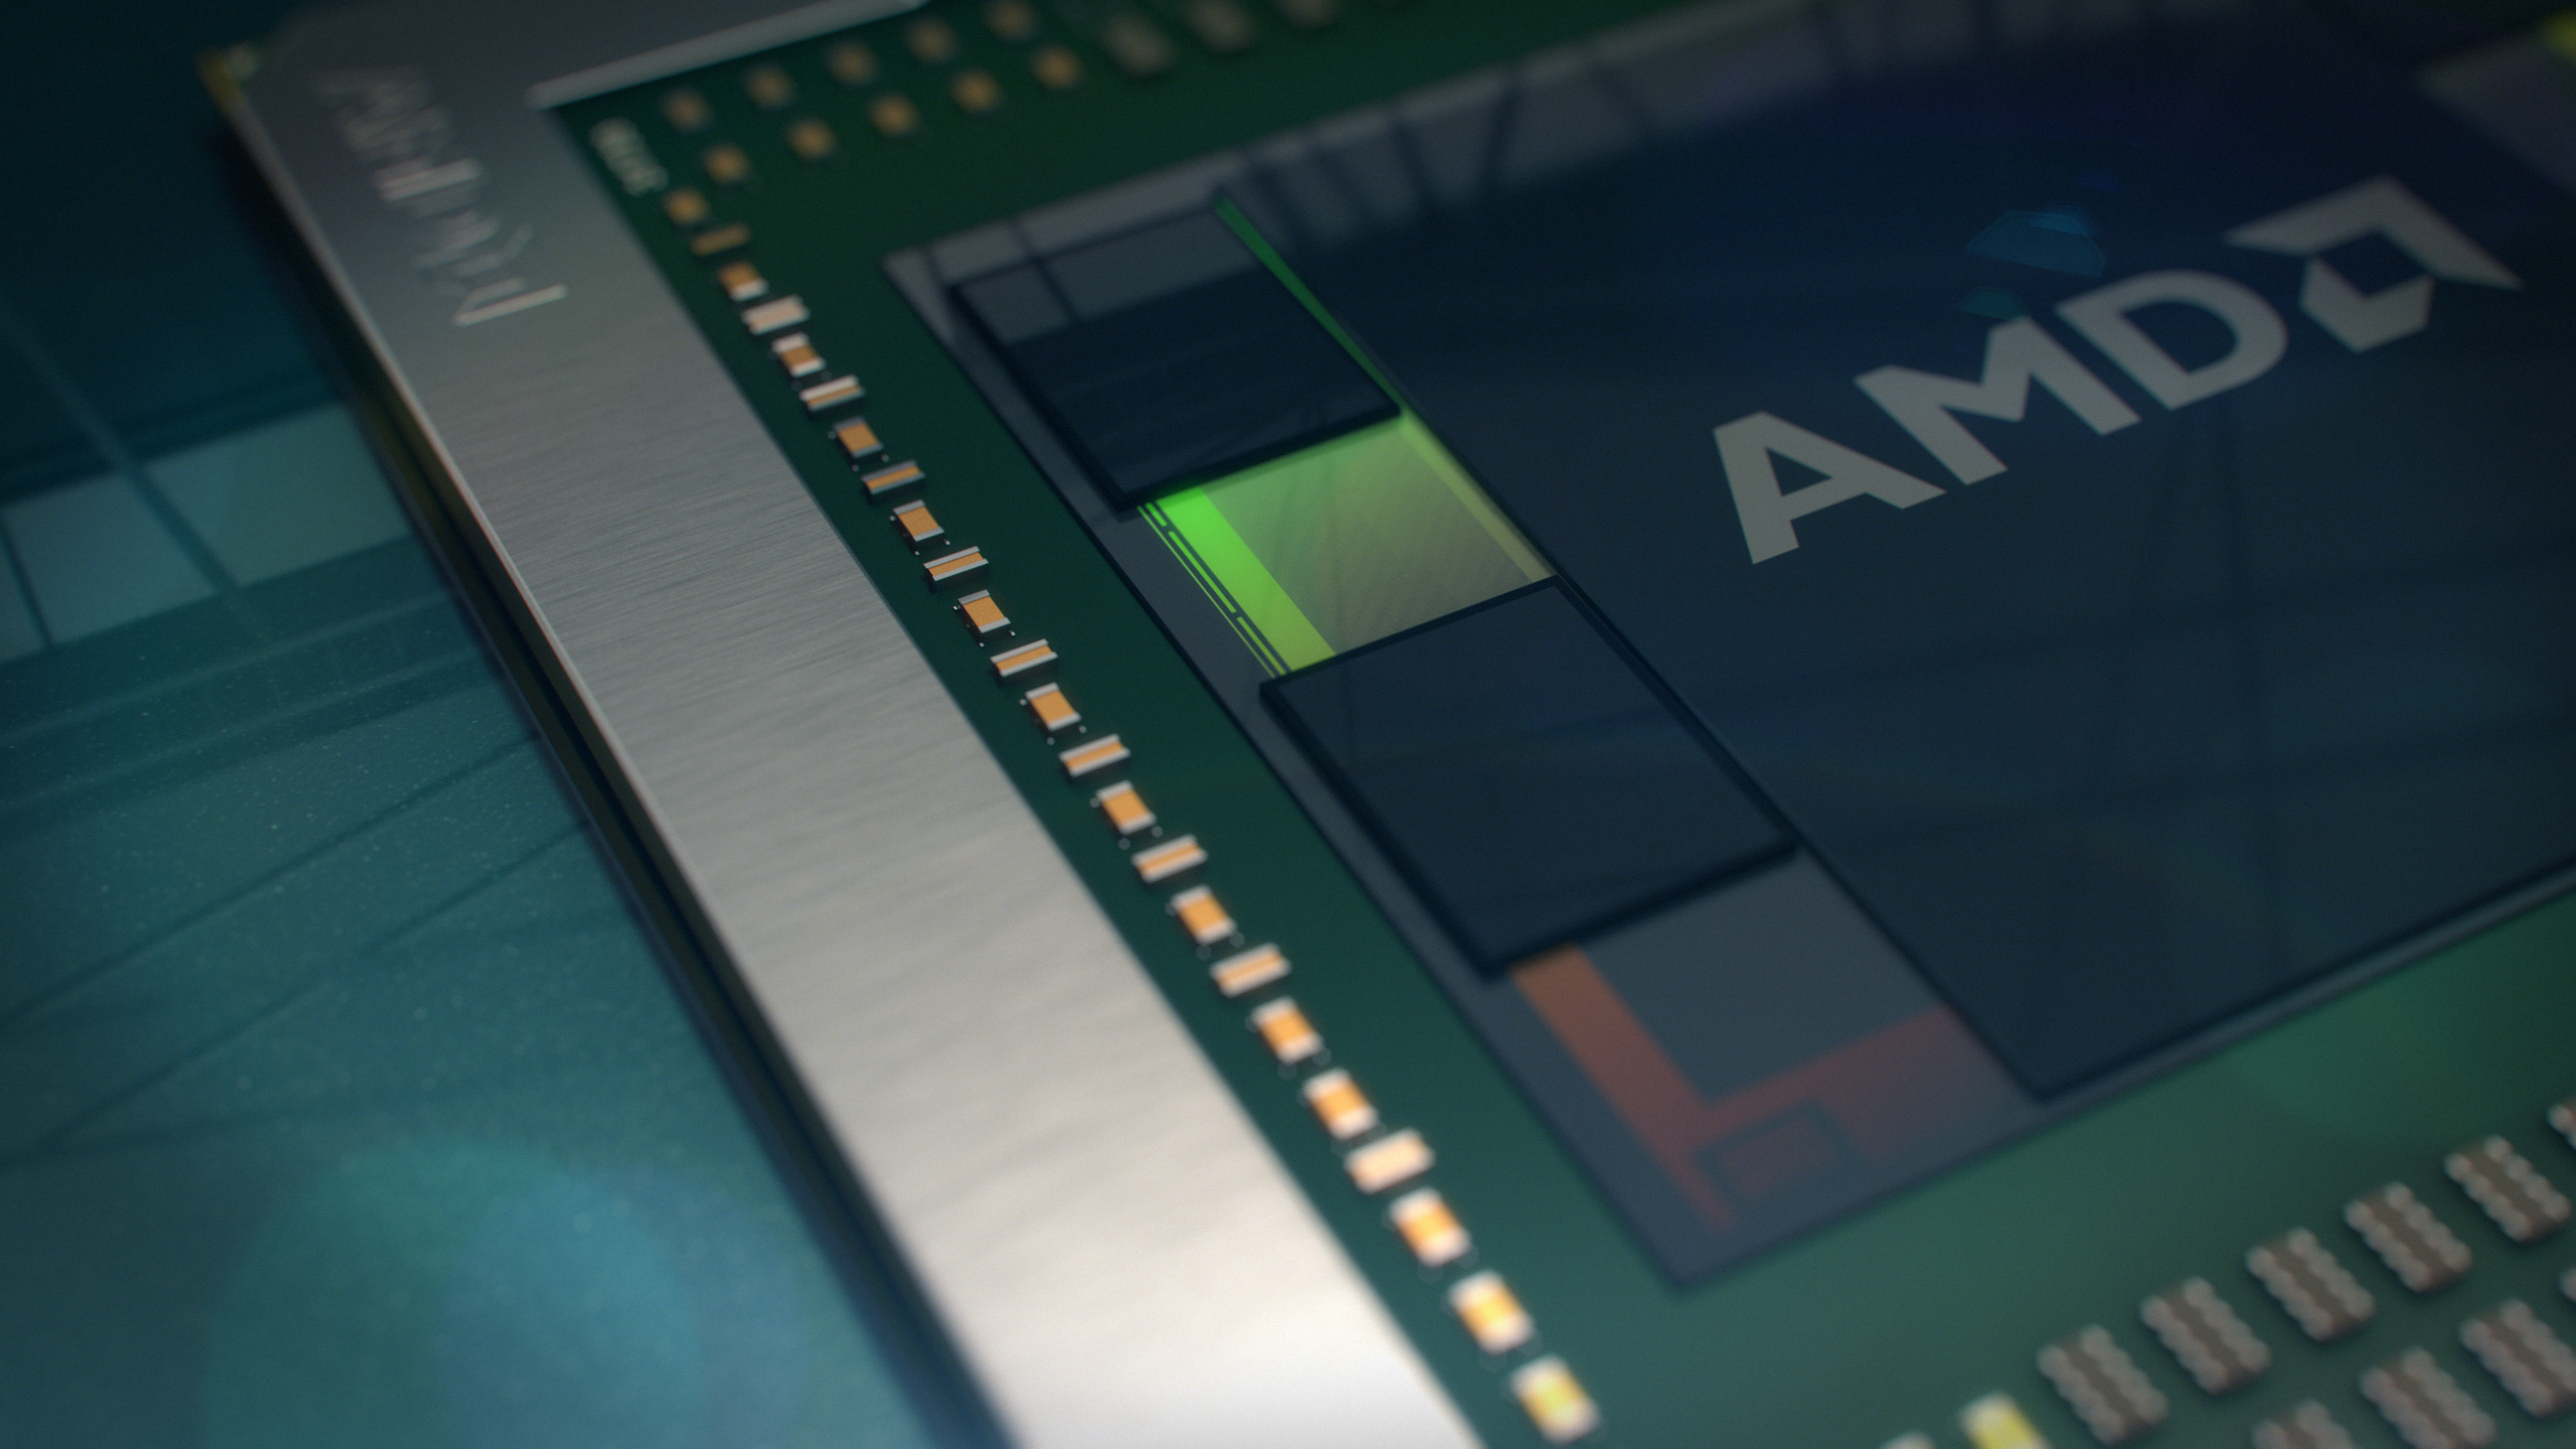 AMDs Greenland GPU May Feature Up To 32 GB Of HBM2 Memory